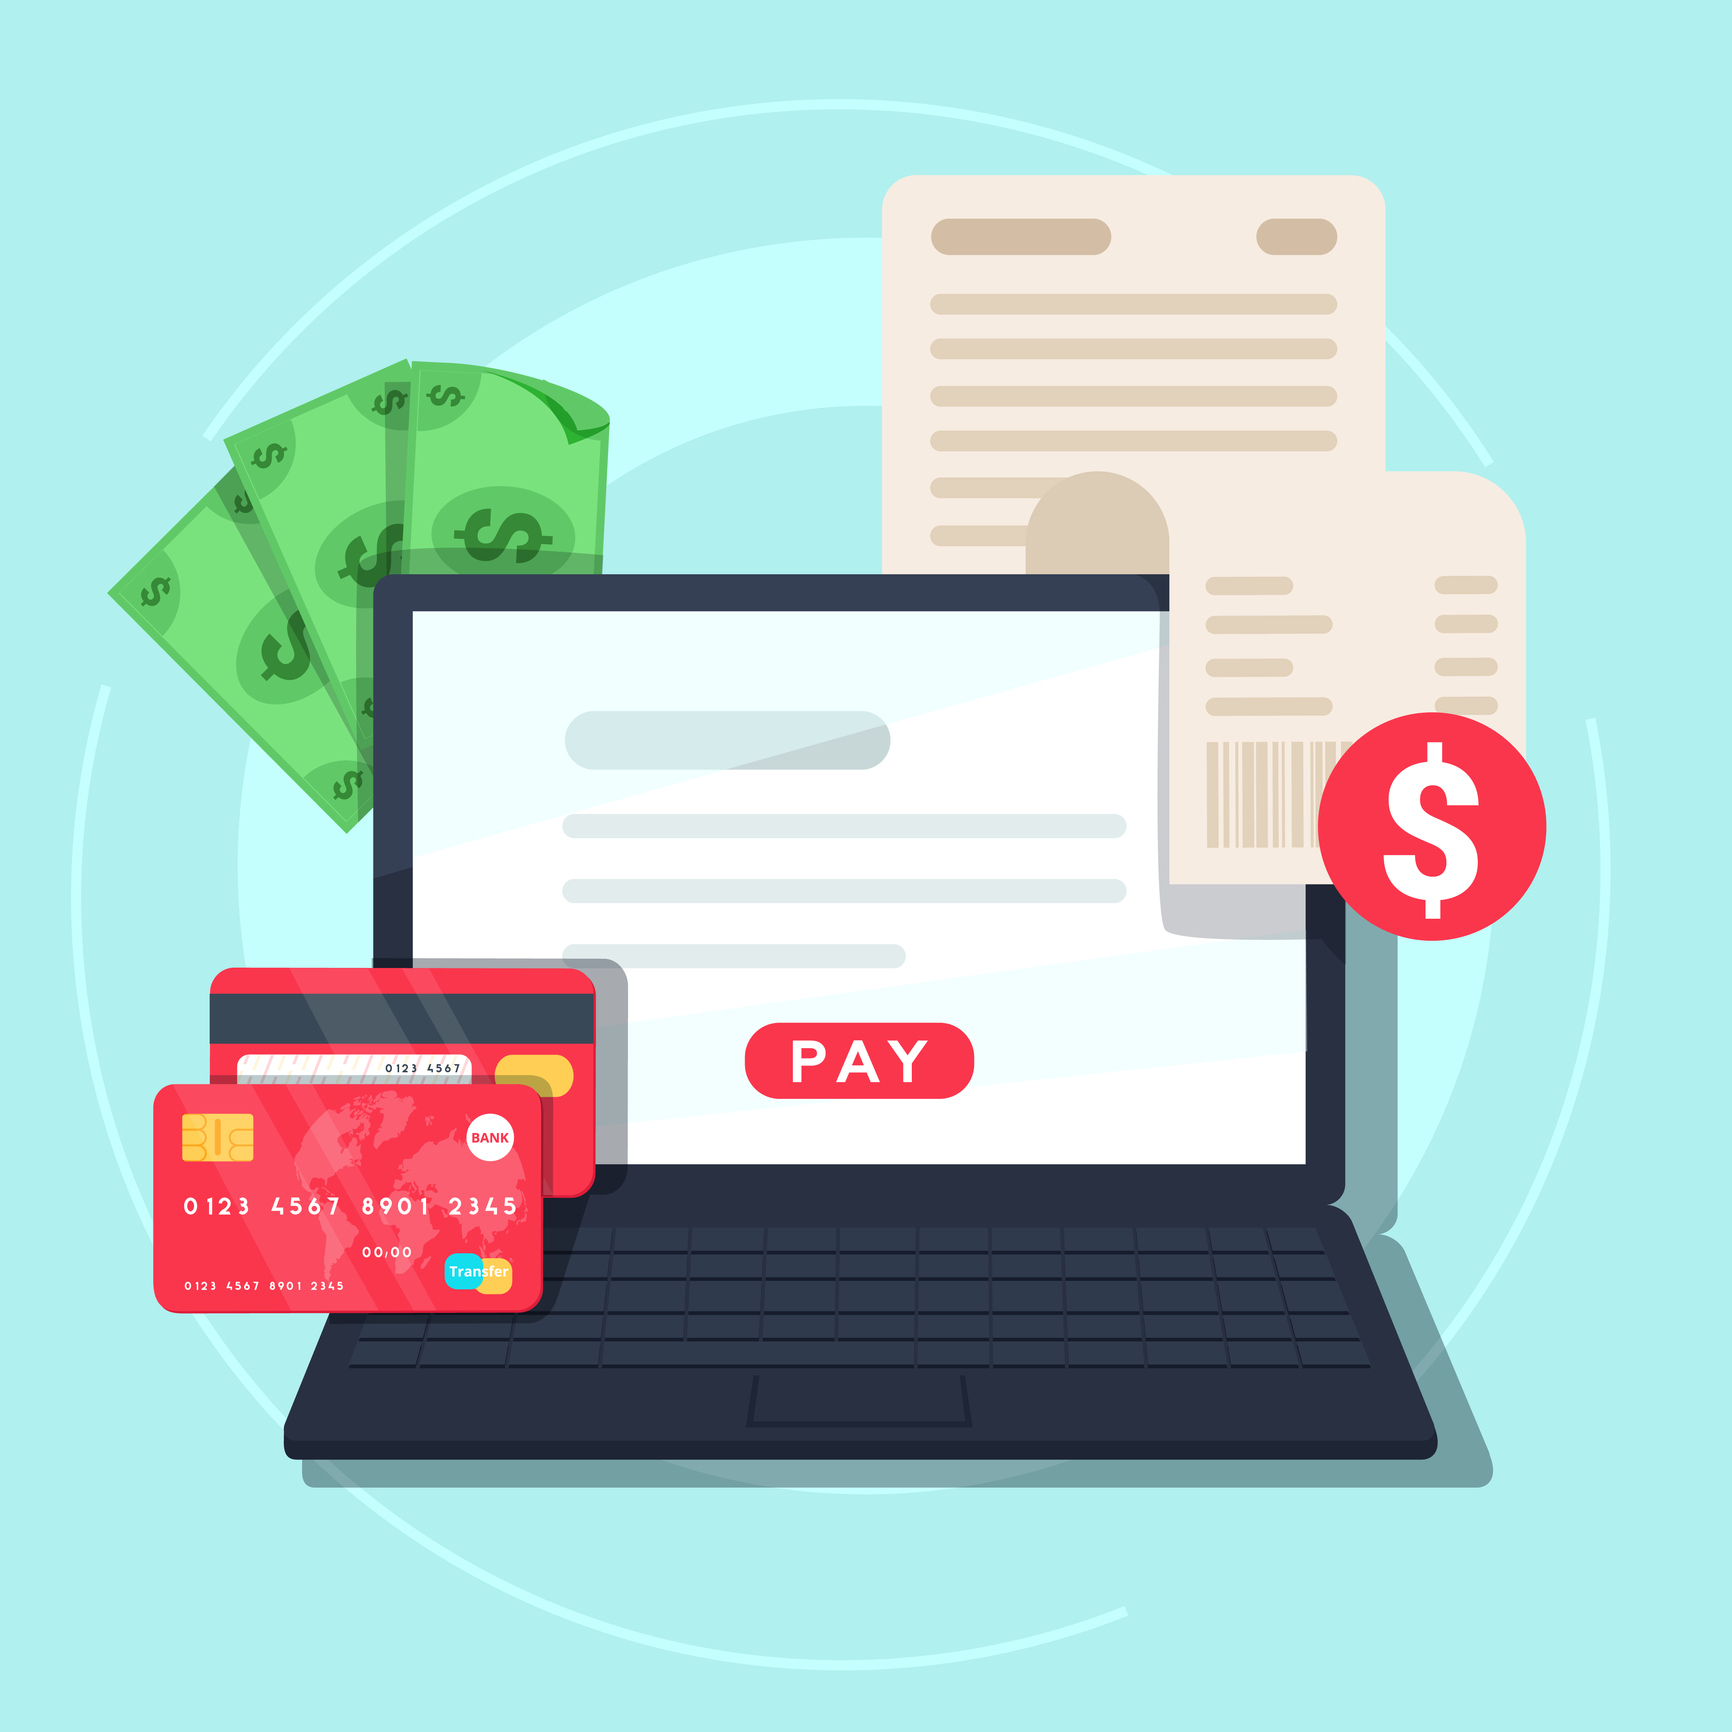 Too many small businesses have money coming in from sales but no real profit. However, a business that uses the Profit First method of bookkeeping will put aside profit on a regular basis and control expenses.